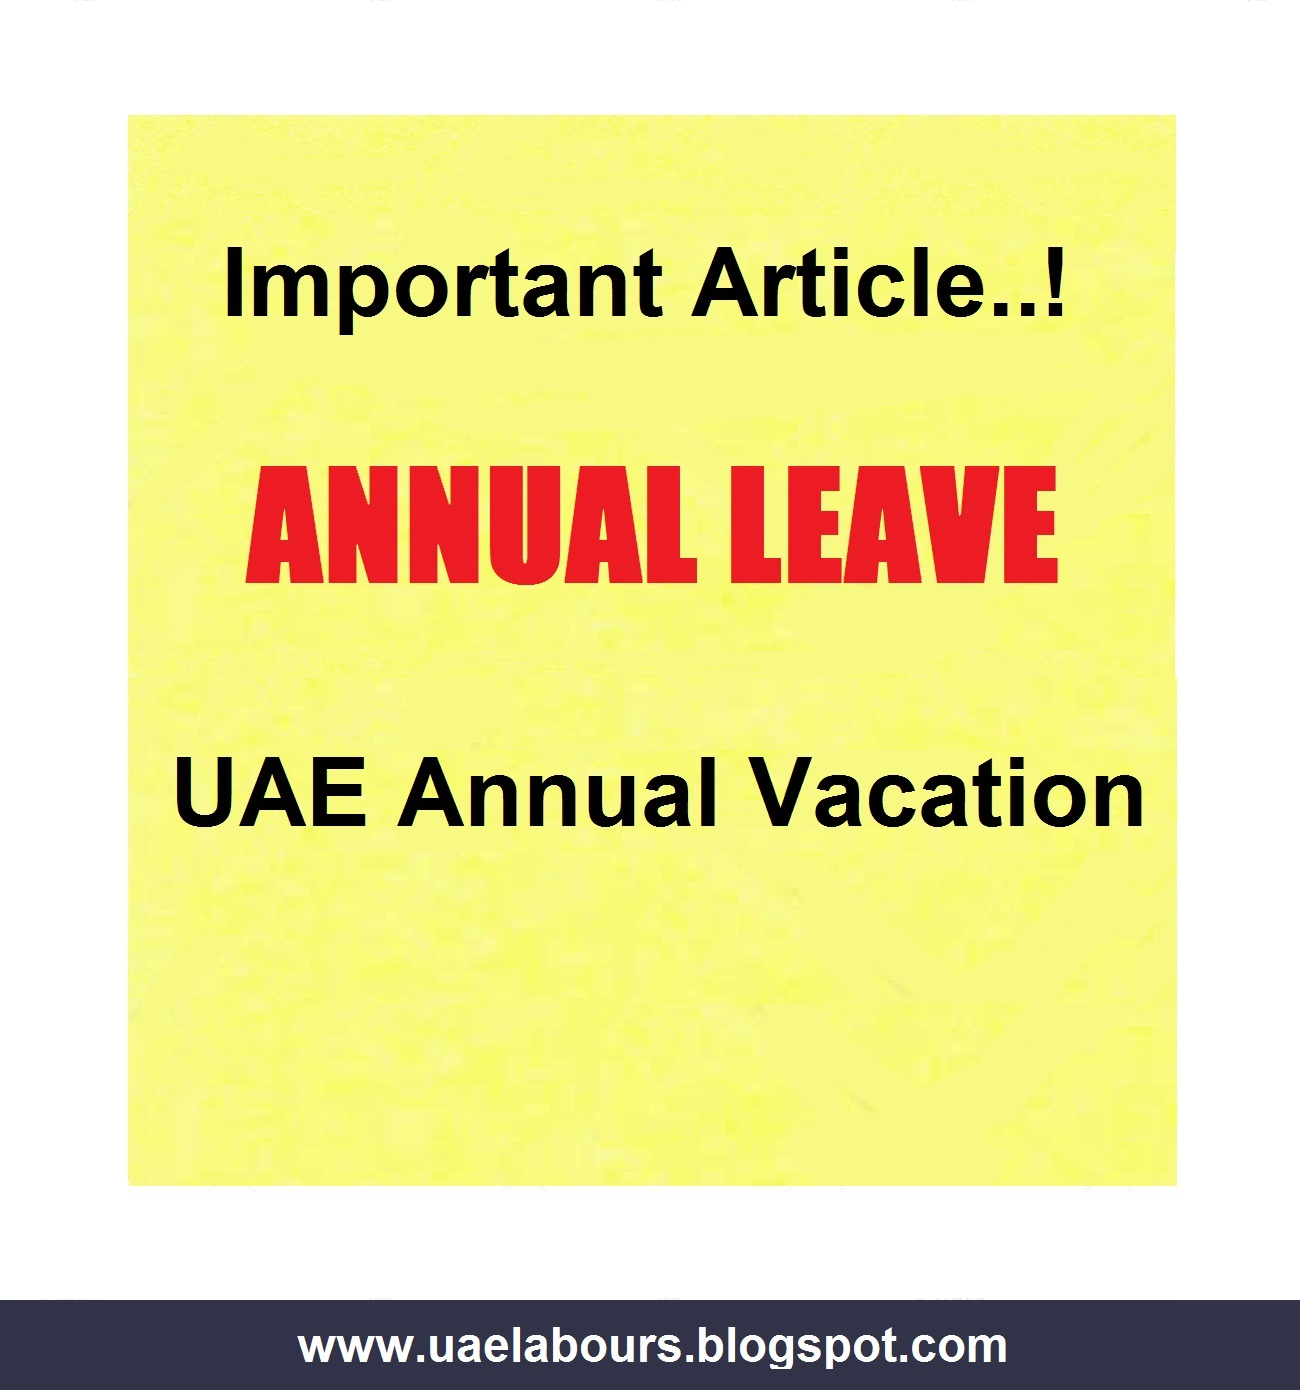 Uae annual leave and vacation labour law uae labours spiritdancerdesigns